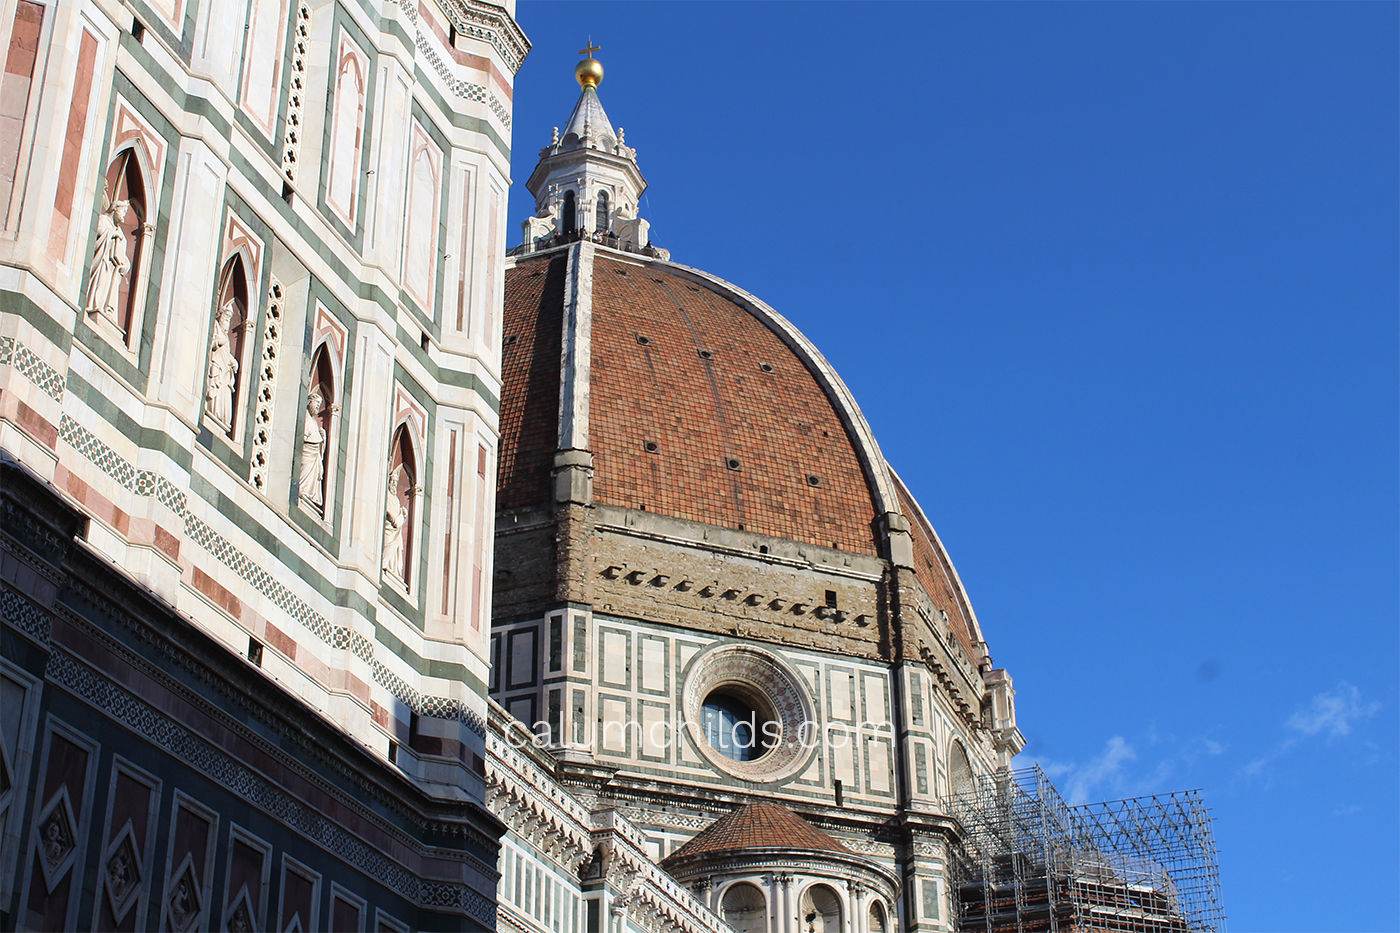 Part of the large red dome of the Florence Cathedral.